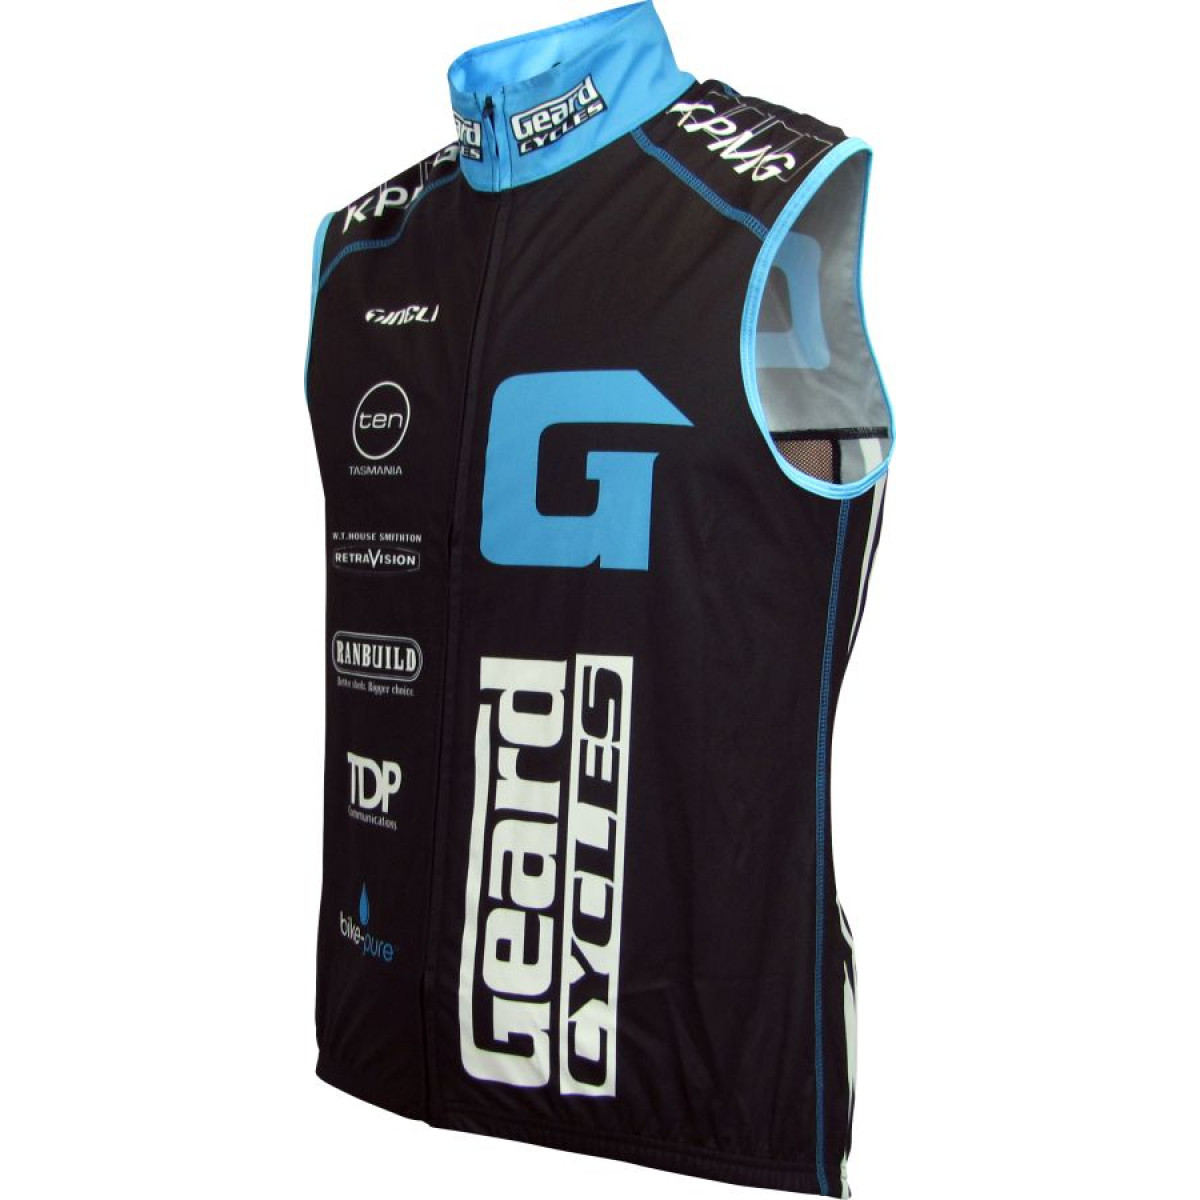 geard vest Sports Vest (Solid Back)